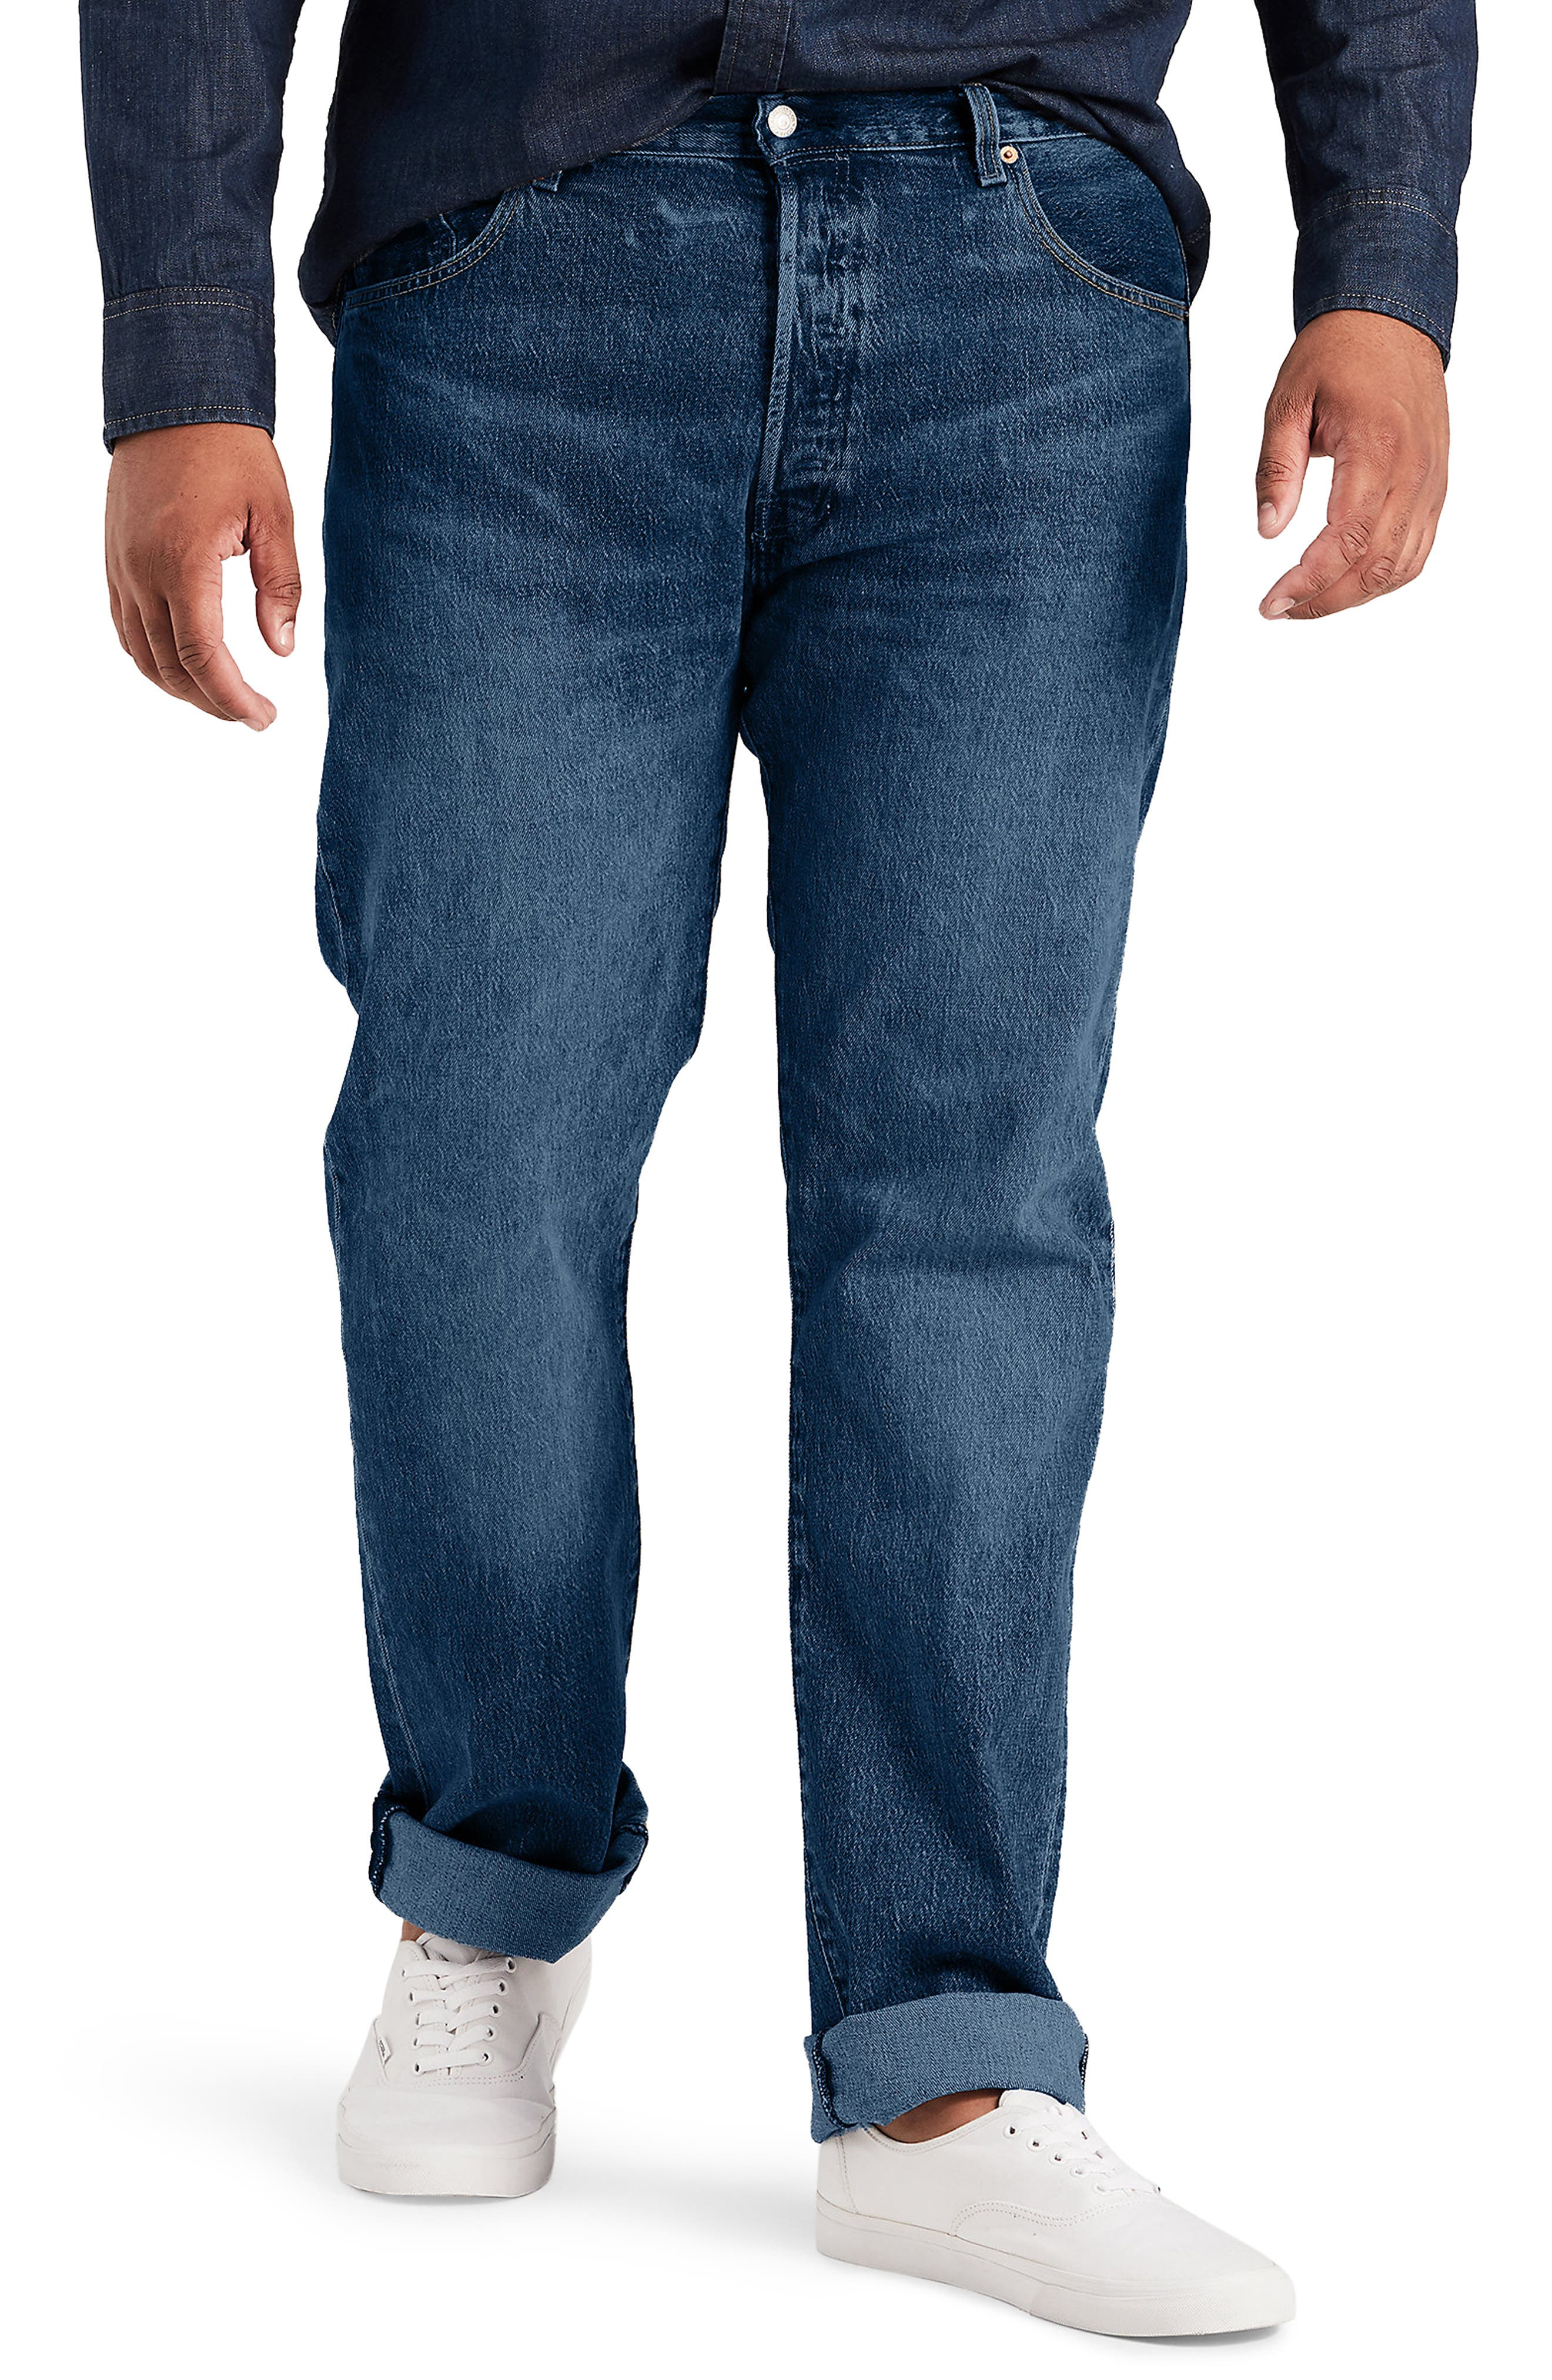 LEVI'S<SUP>®</SUP>,                             501<sup>®</sup> Straight Leg Jeans,                             Main thumbnail 1, color,                             DAIRY WHIPPED